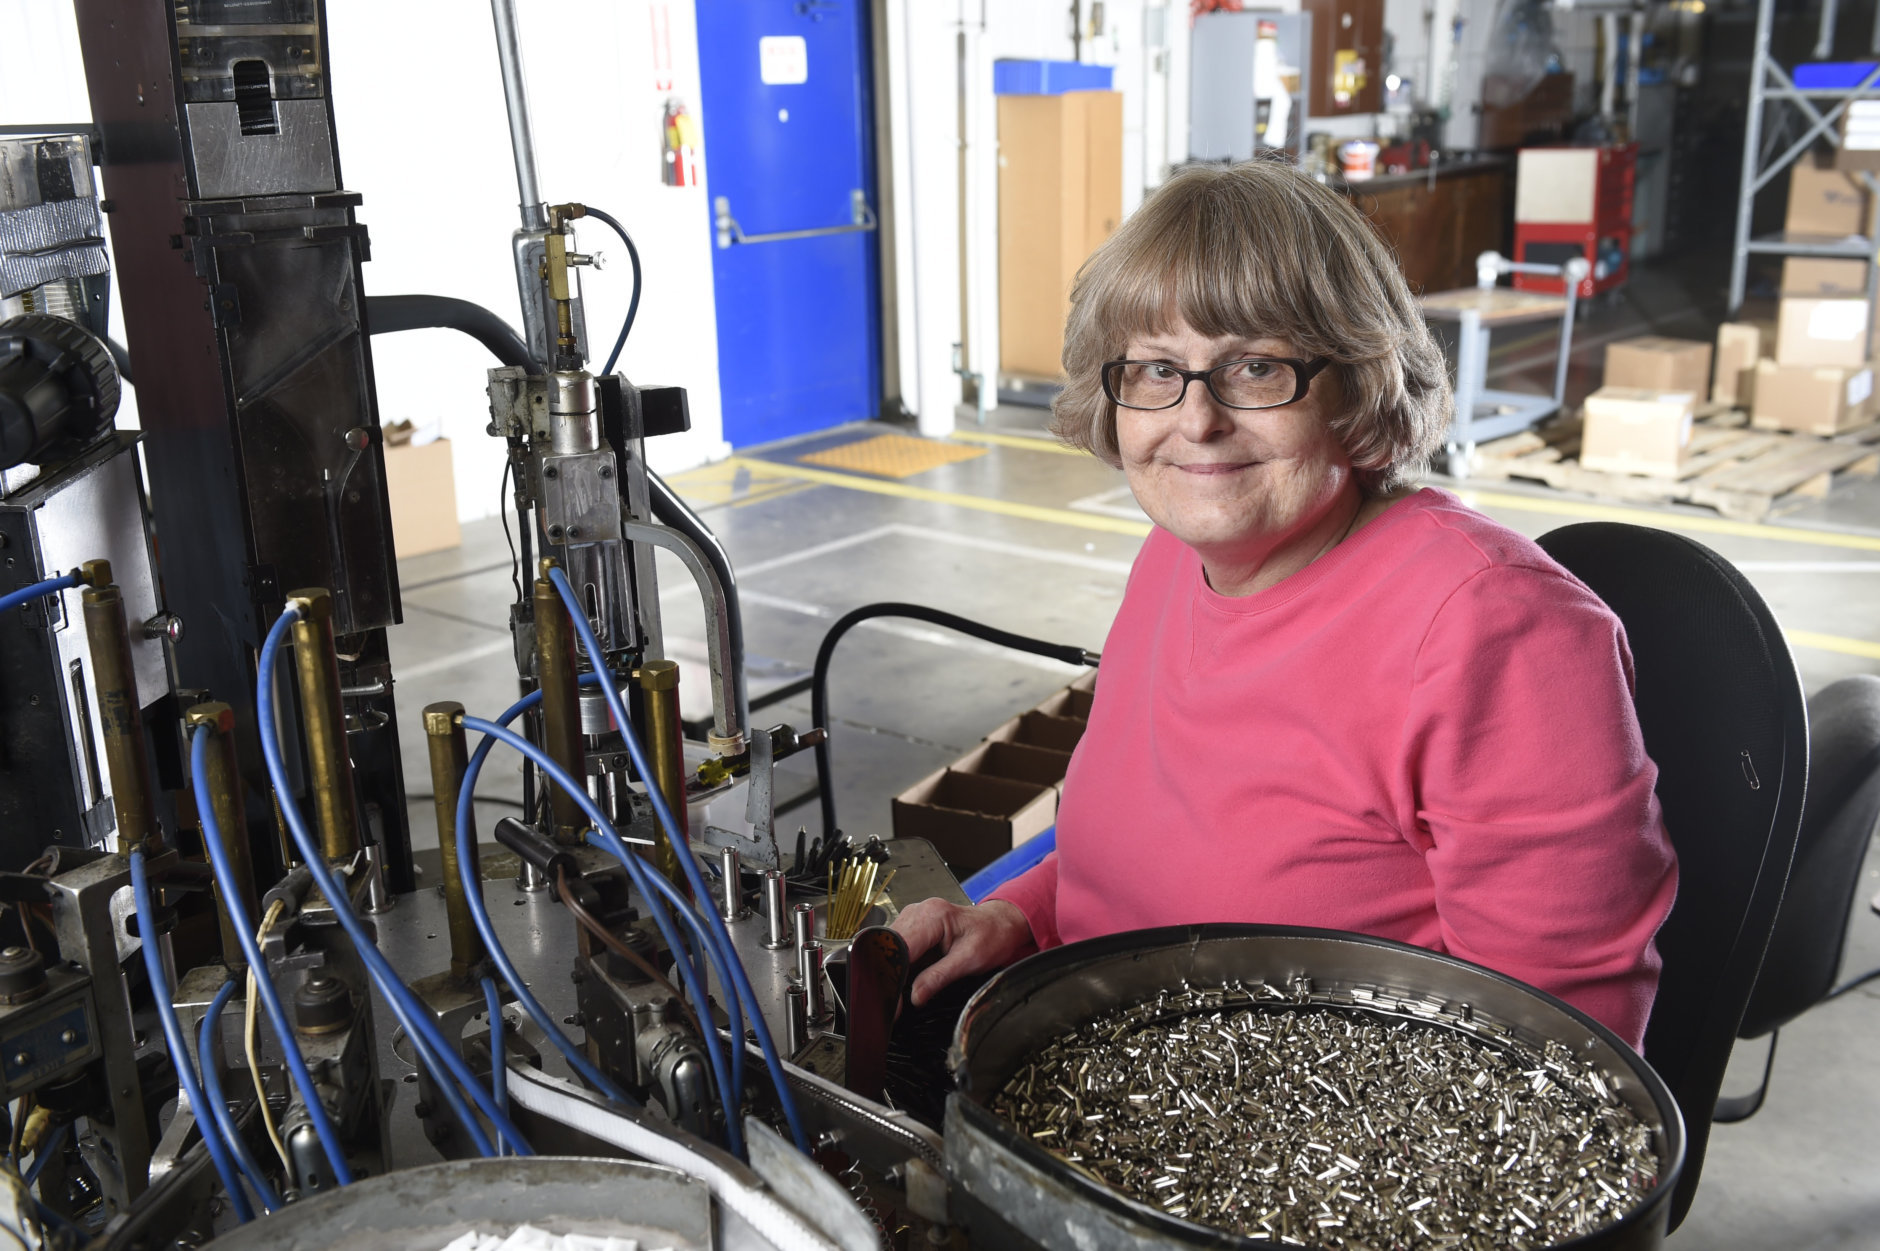 Lynn Larson, a machine operator at Industries of the Blind in Greensboro, North Carolina, manufacturing the SKILCRAFT U.S. Government pen. She has been working for the organization for nearly 40 years. (Courtesy National Indsutries for the Blind)